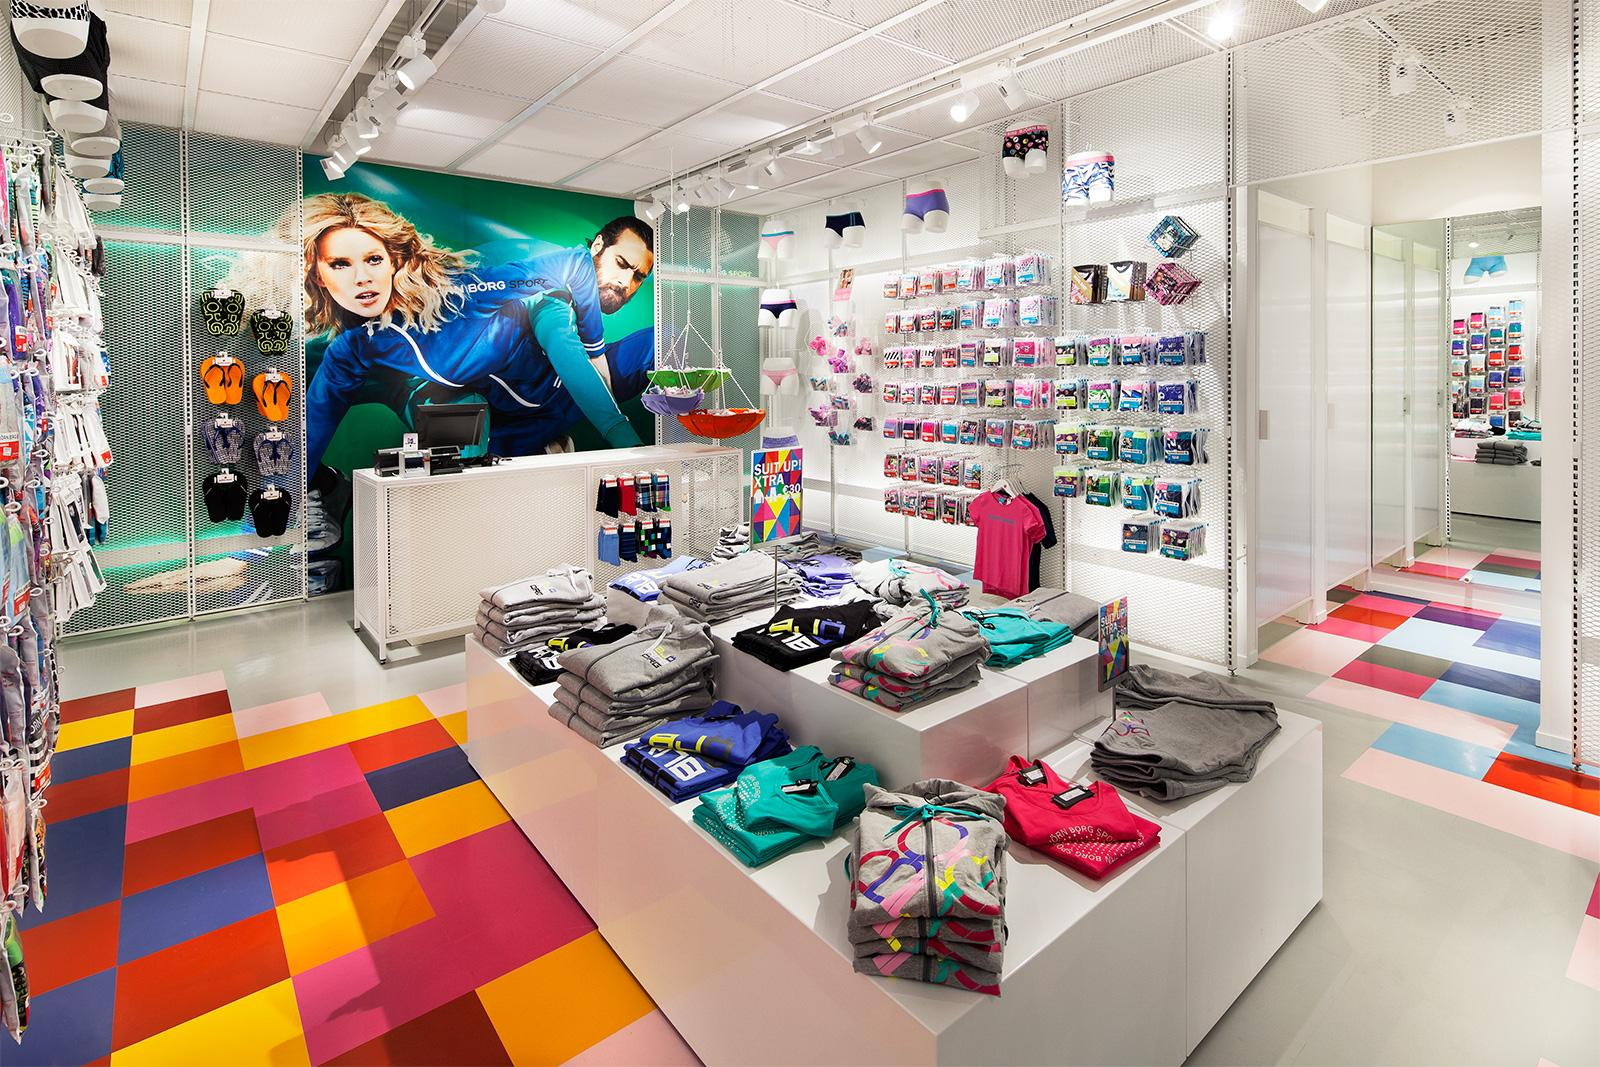 Scent marketing in Björn Borg fashion stores